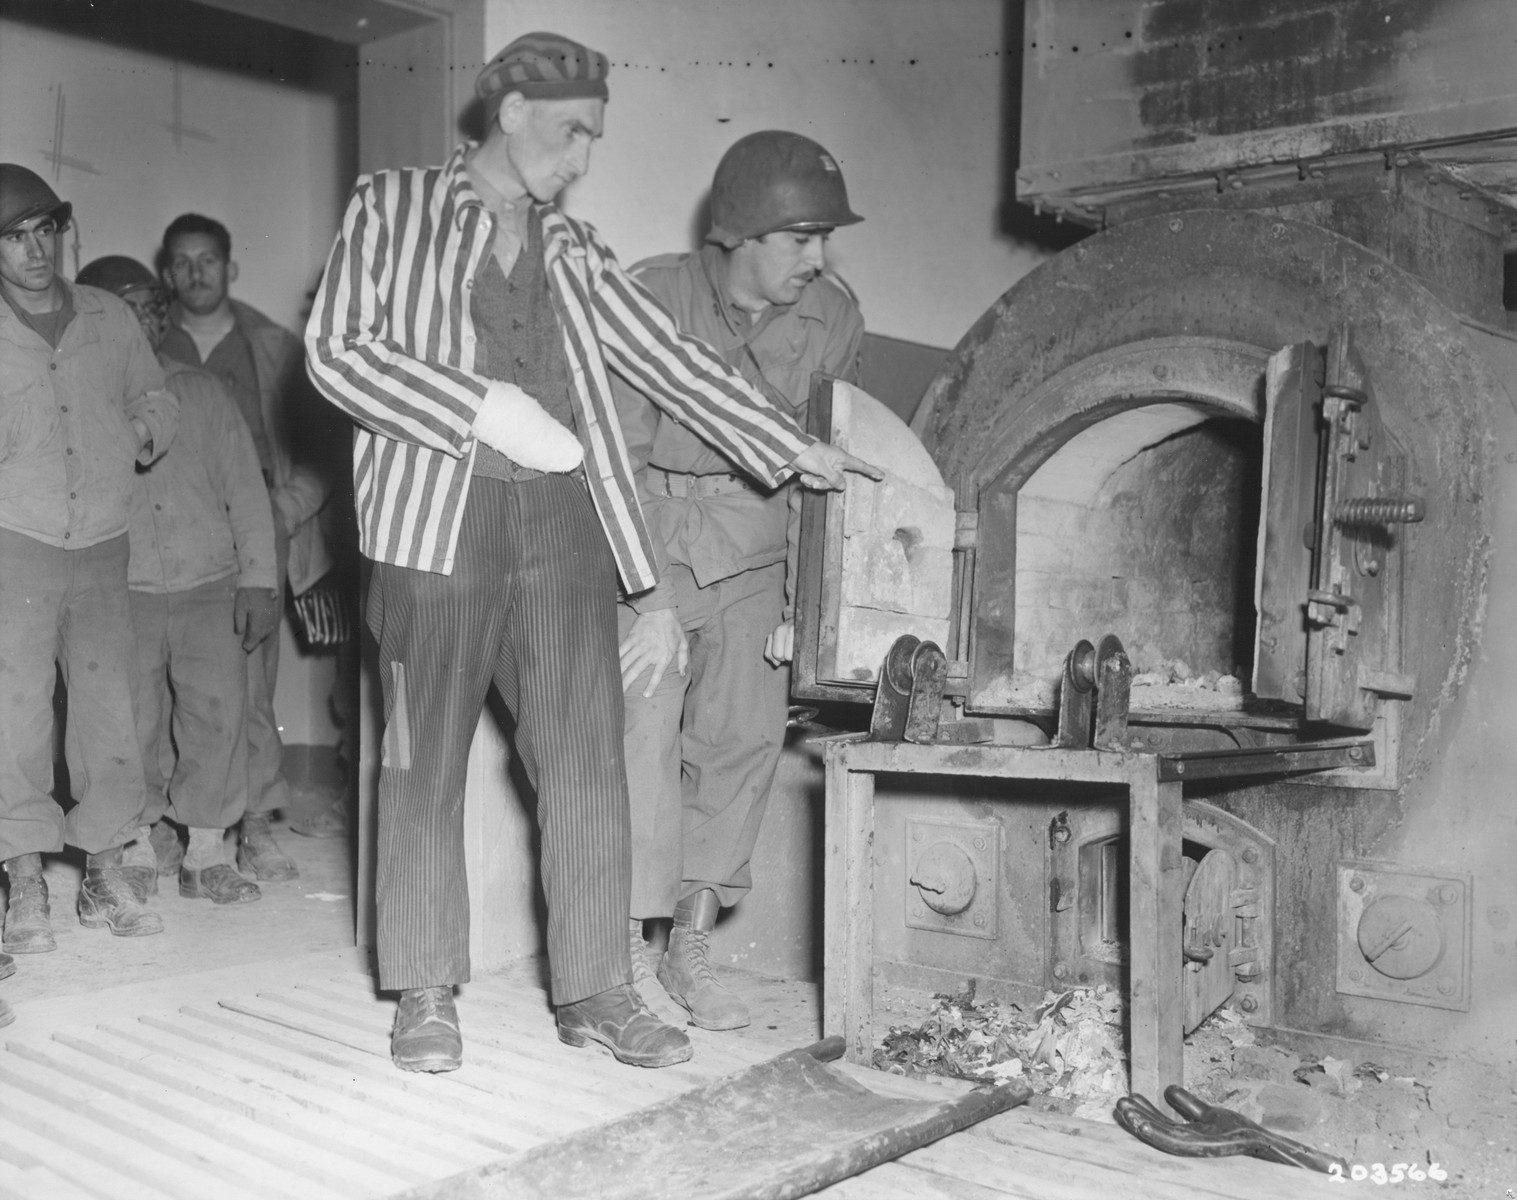 A Polish survivor shows John L. Lyndon the Nordhausen crematoria.